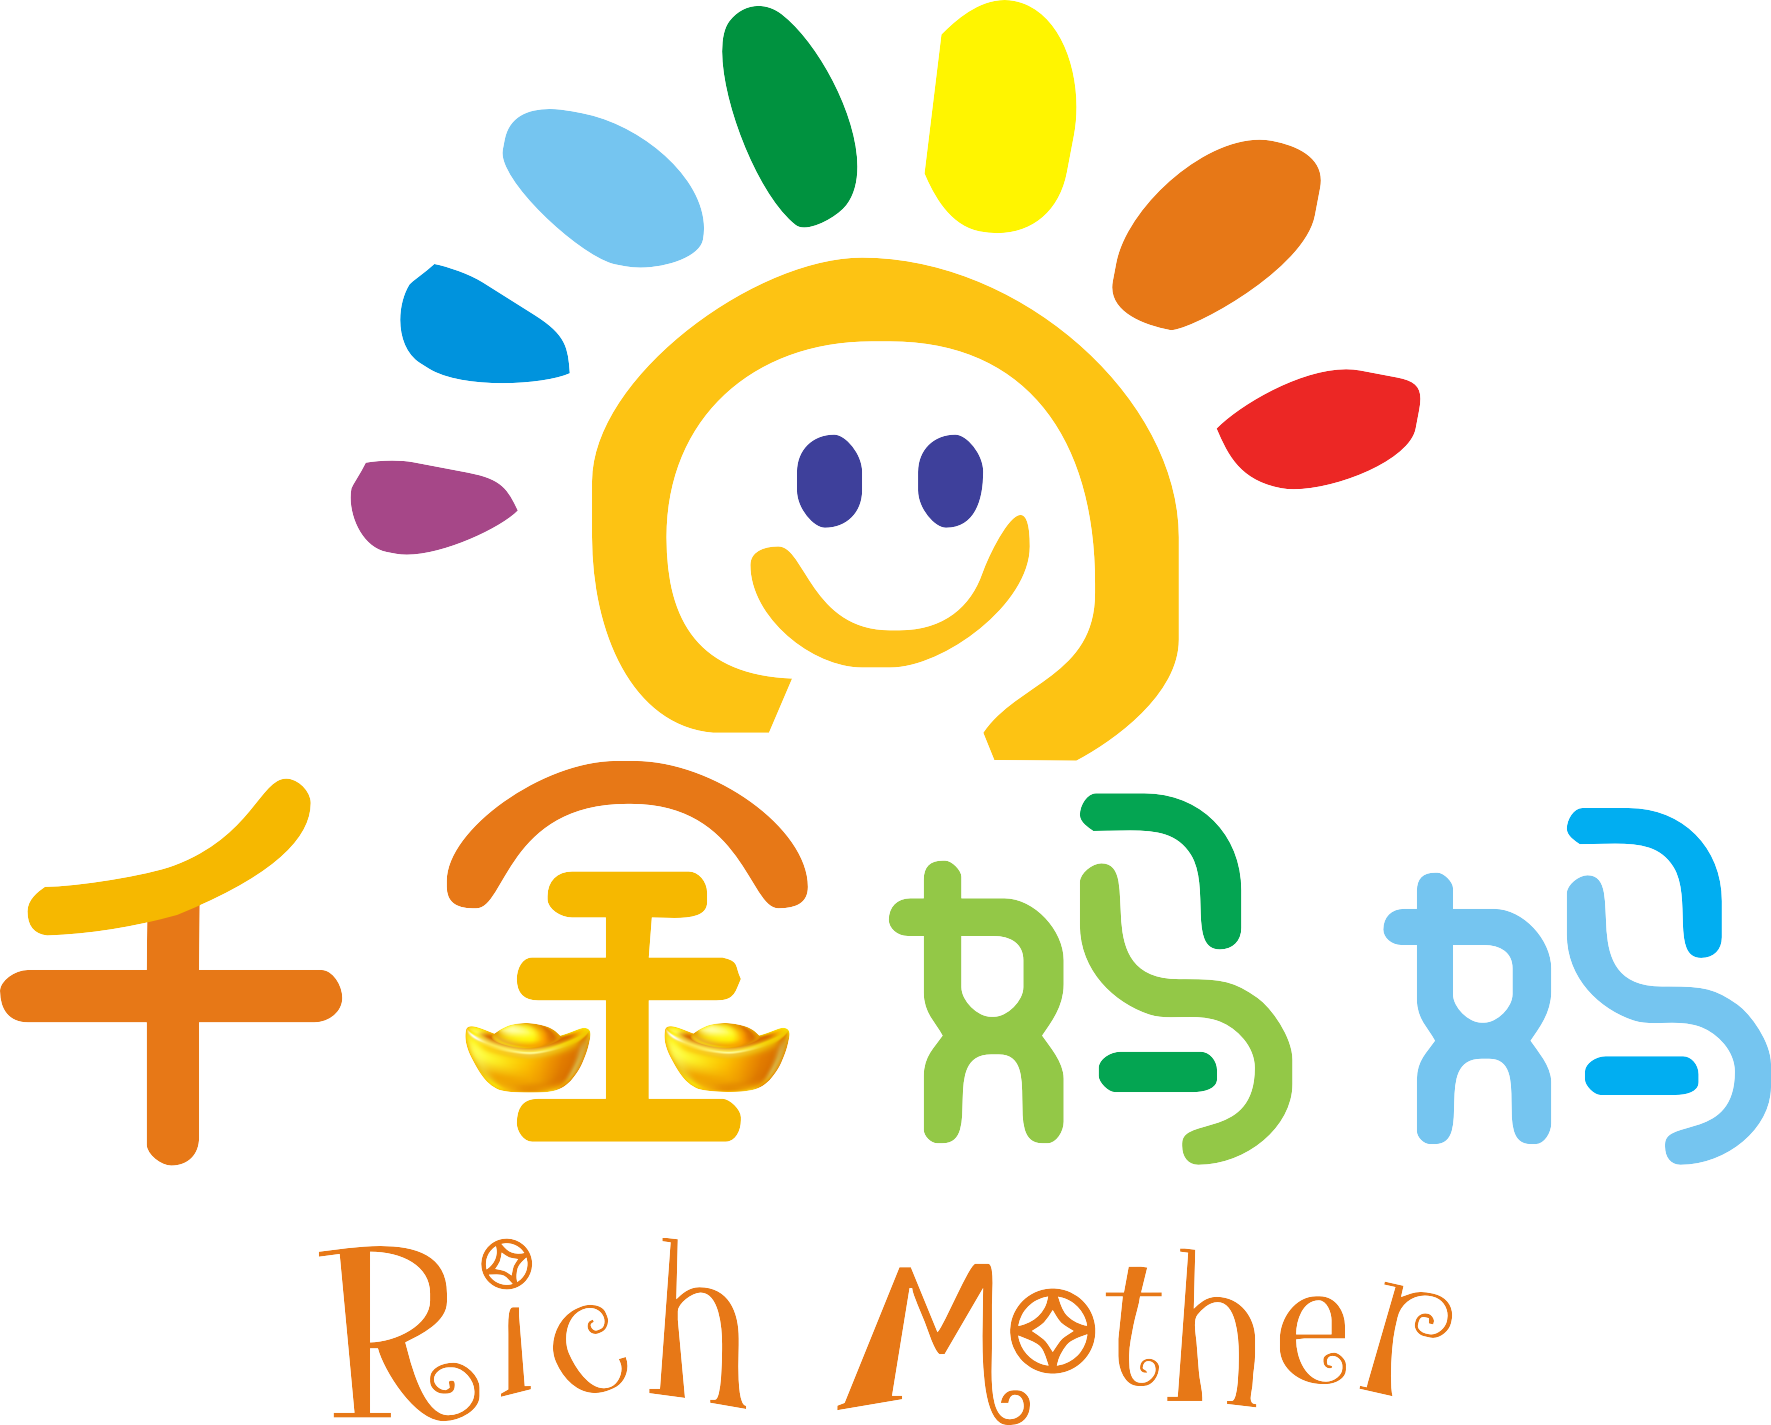 RichMother